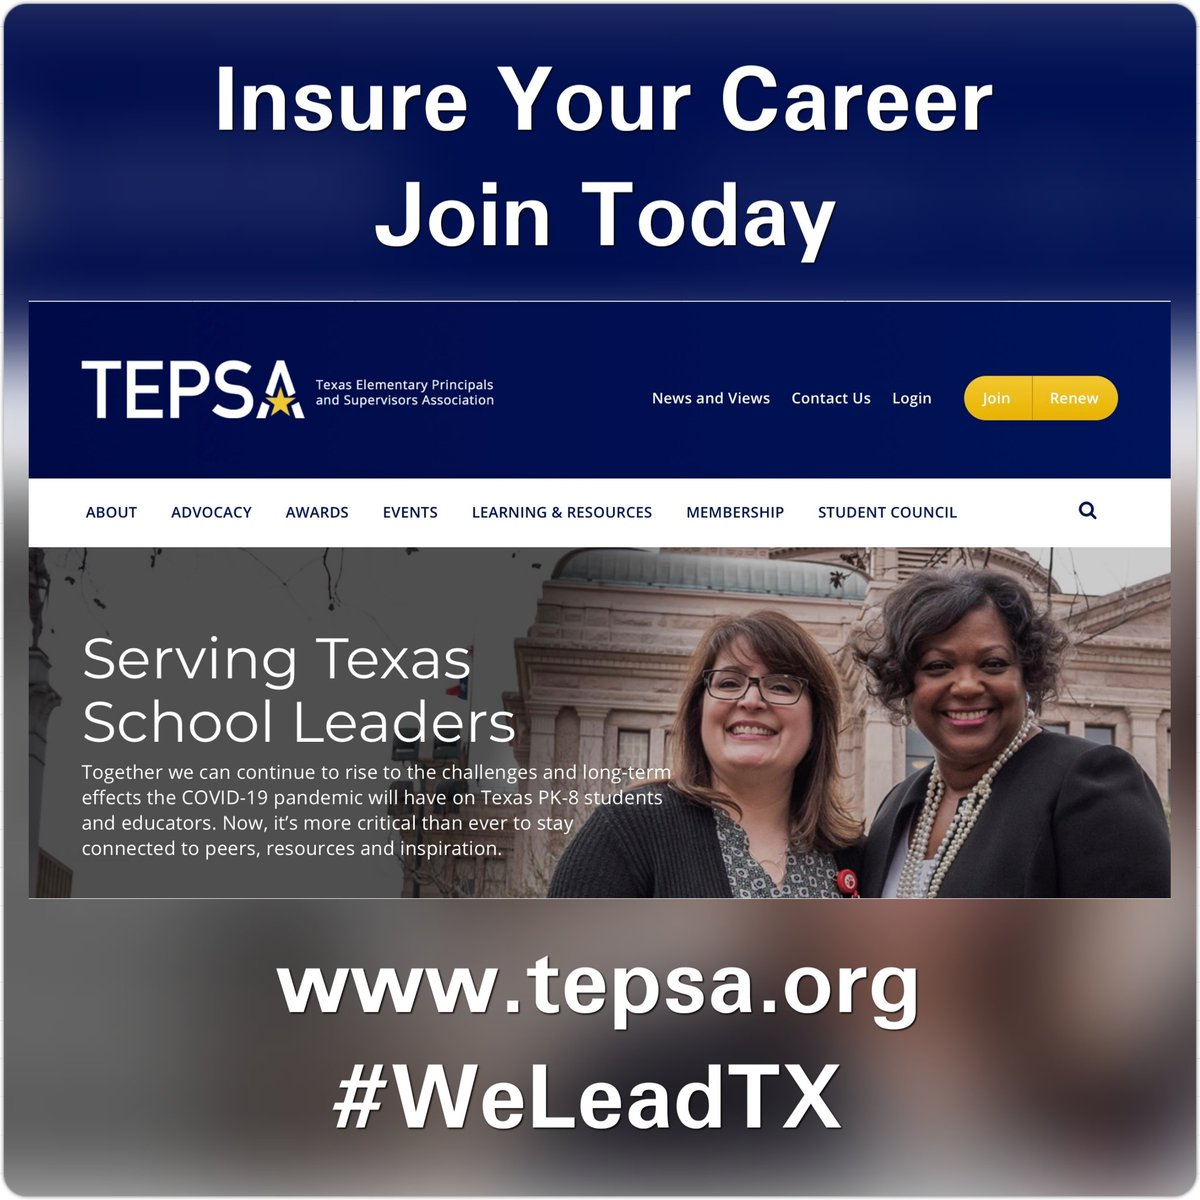 Insure your career and join today @TEPSAtalk! tepsa.org/membership #WeLeadTX #tepsatuesday